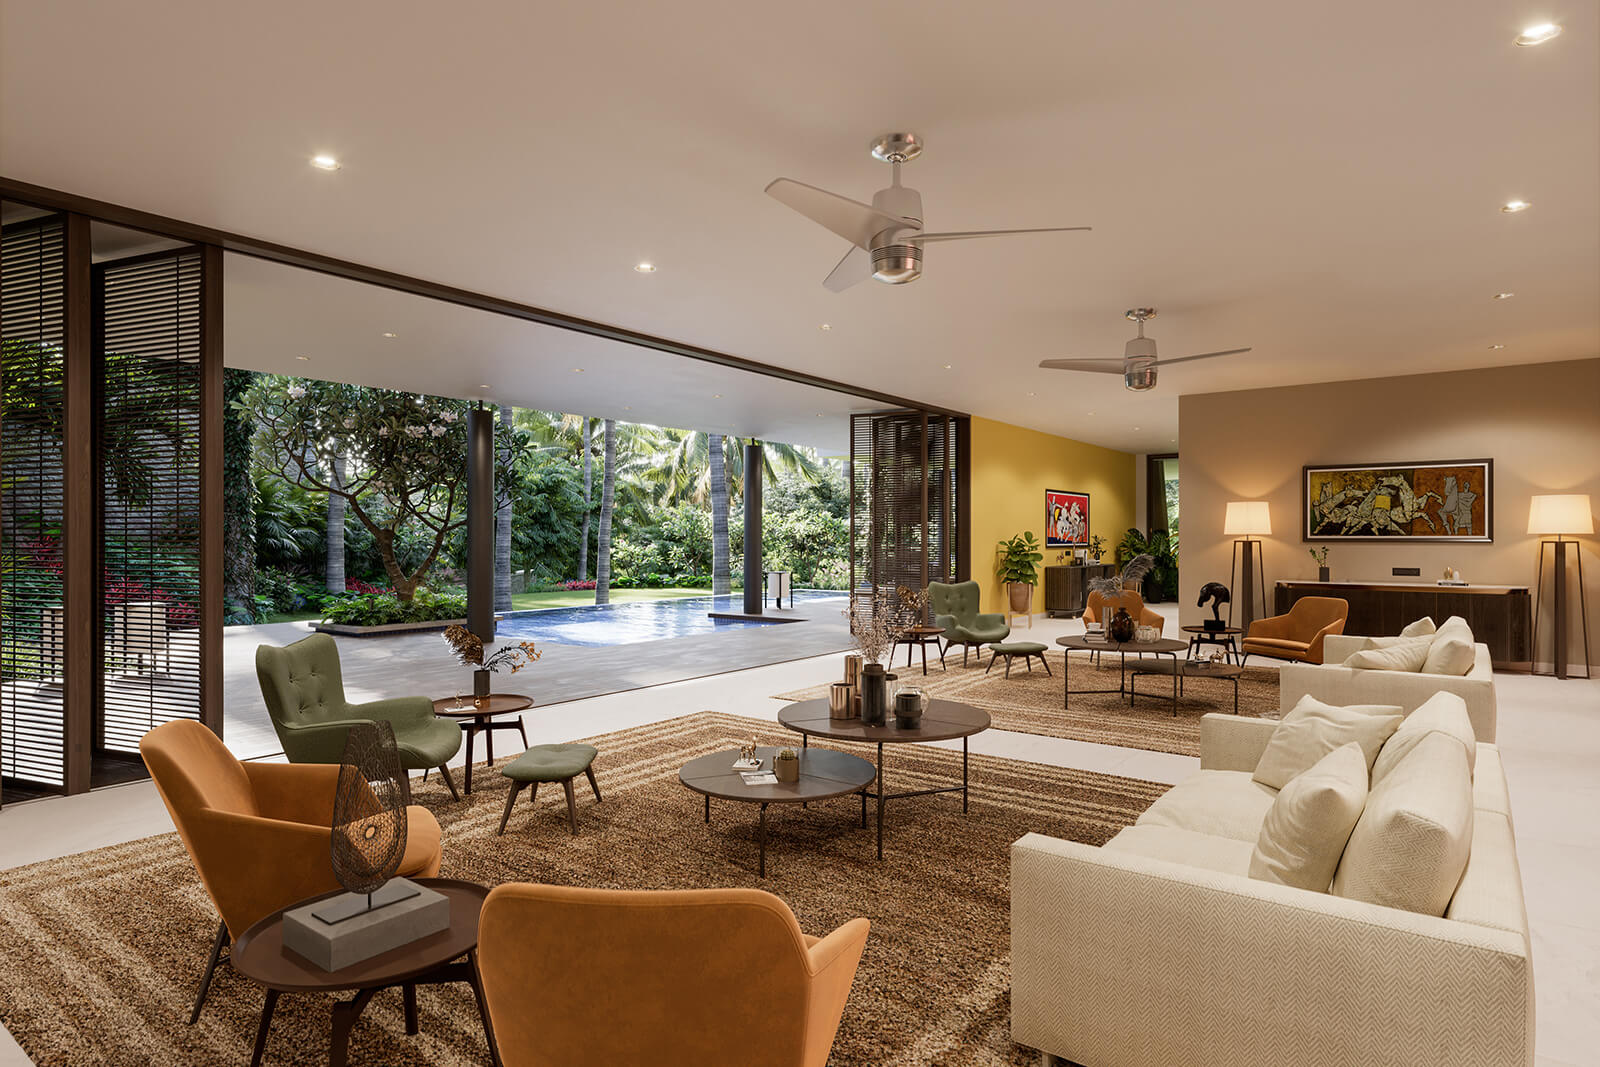 Private Residence - Manglore